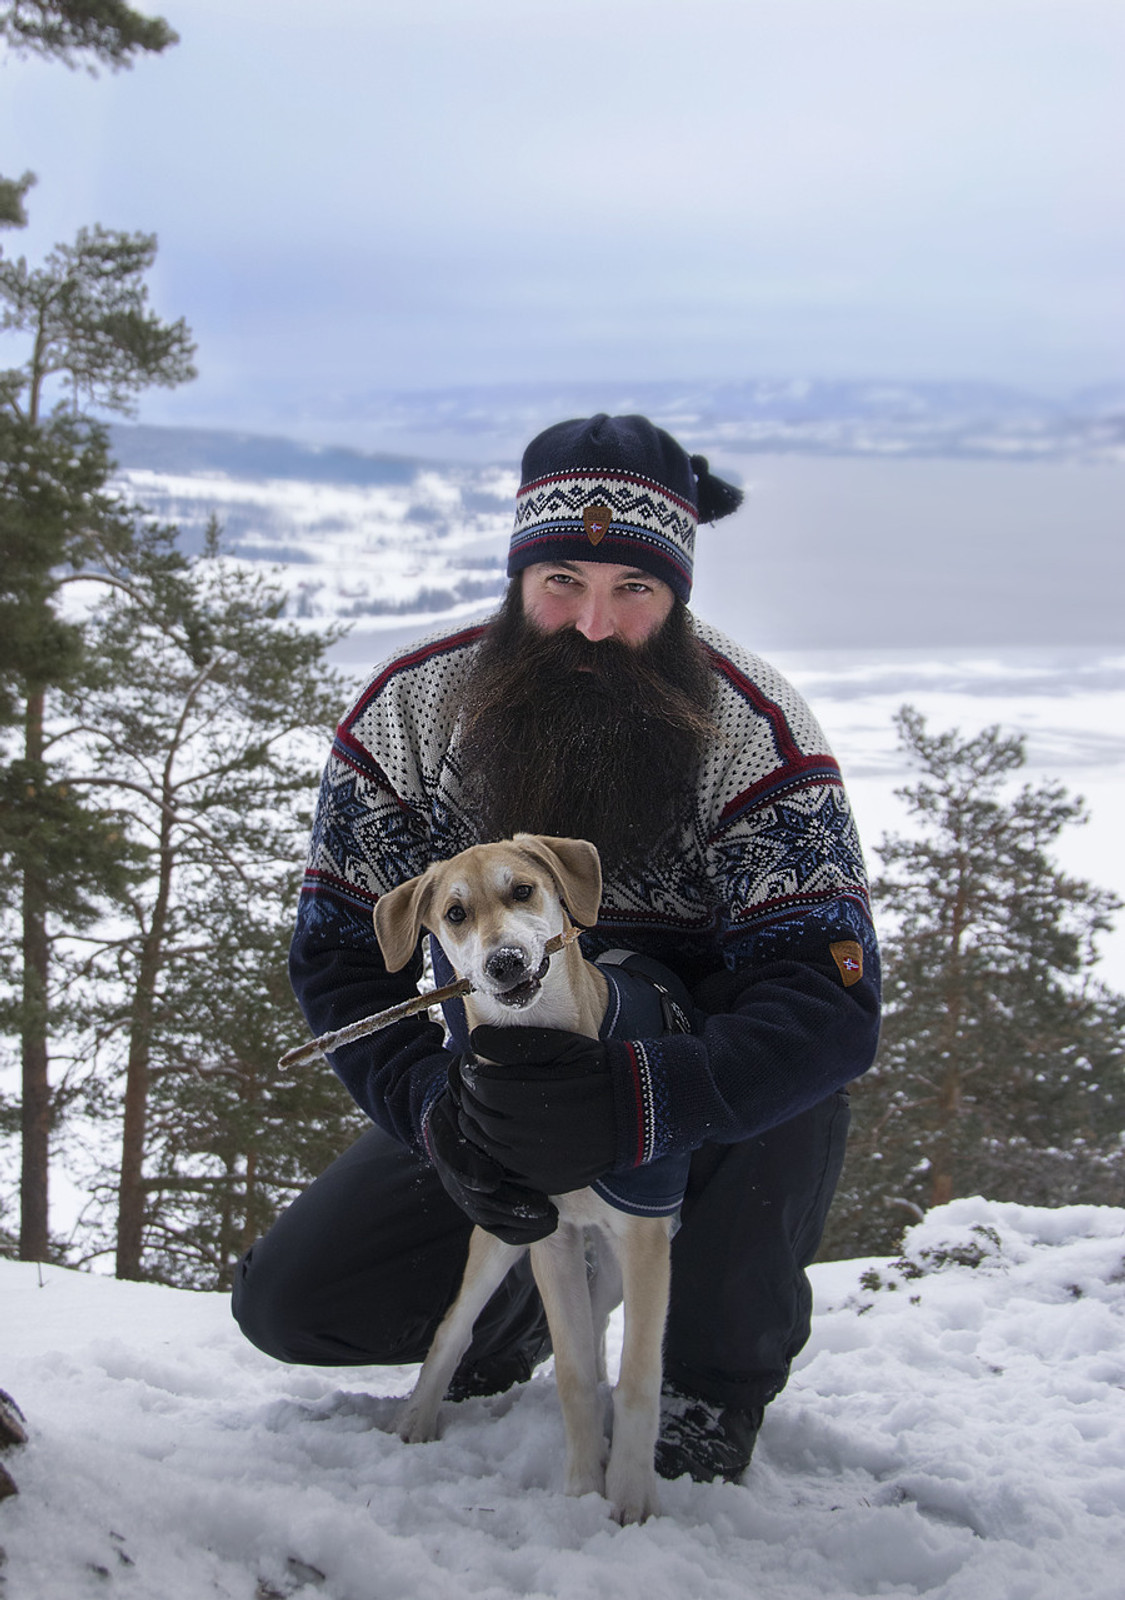 Man with his dog in the woods wearing Dale of Norway's Vail sweater in Midnight Navy/Red Rose/Off White/Indigo/China Blue, 90331-C, and Vail hat in n Navy/Red Rose/Off White/Indigo, 40331-C